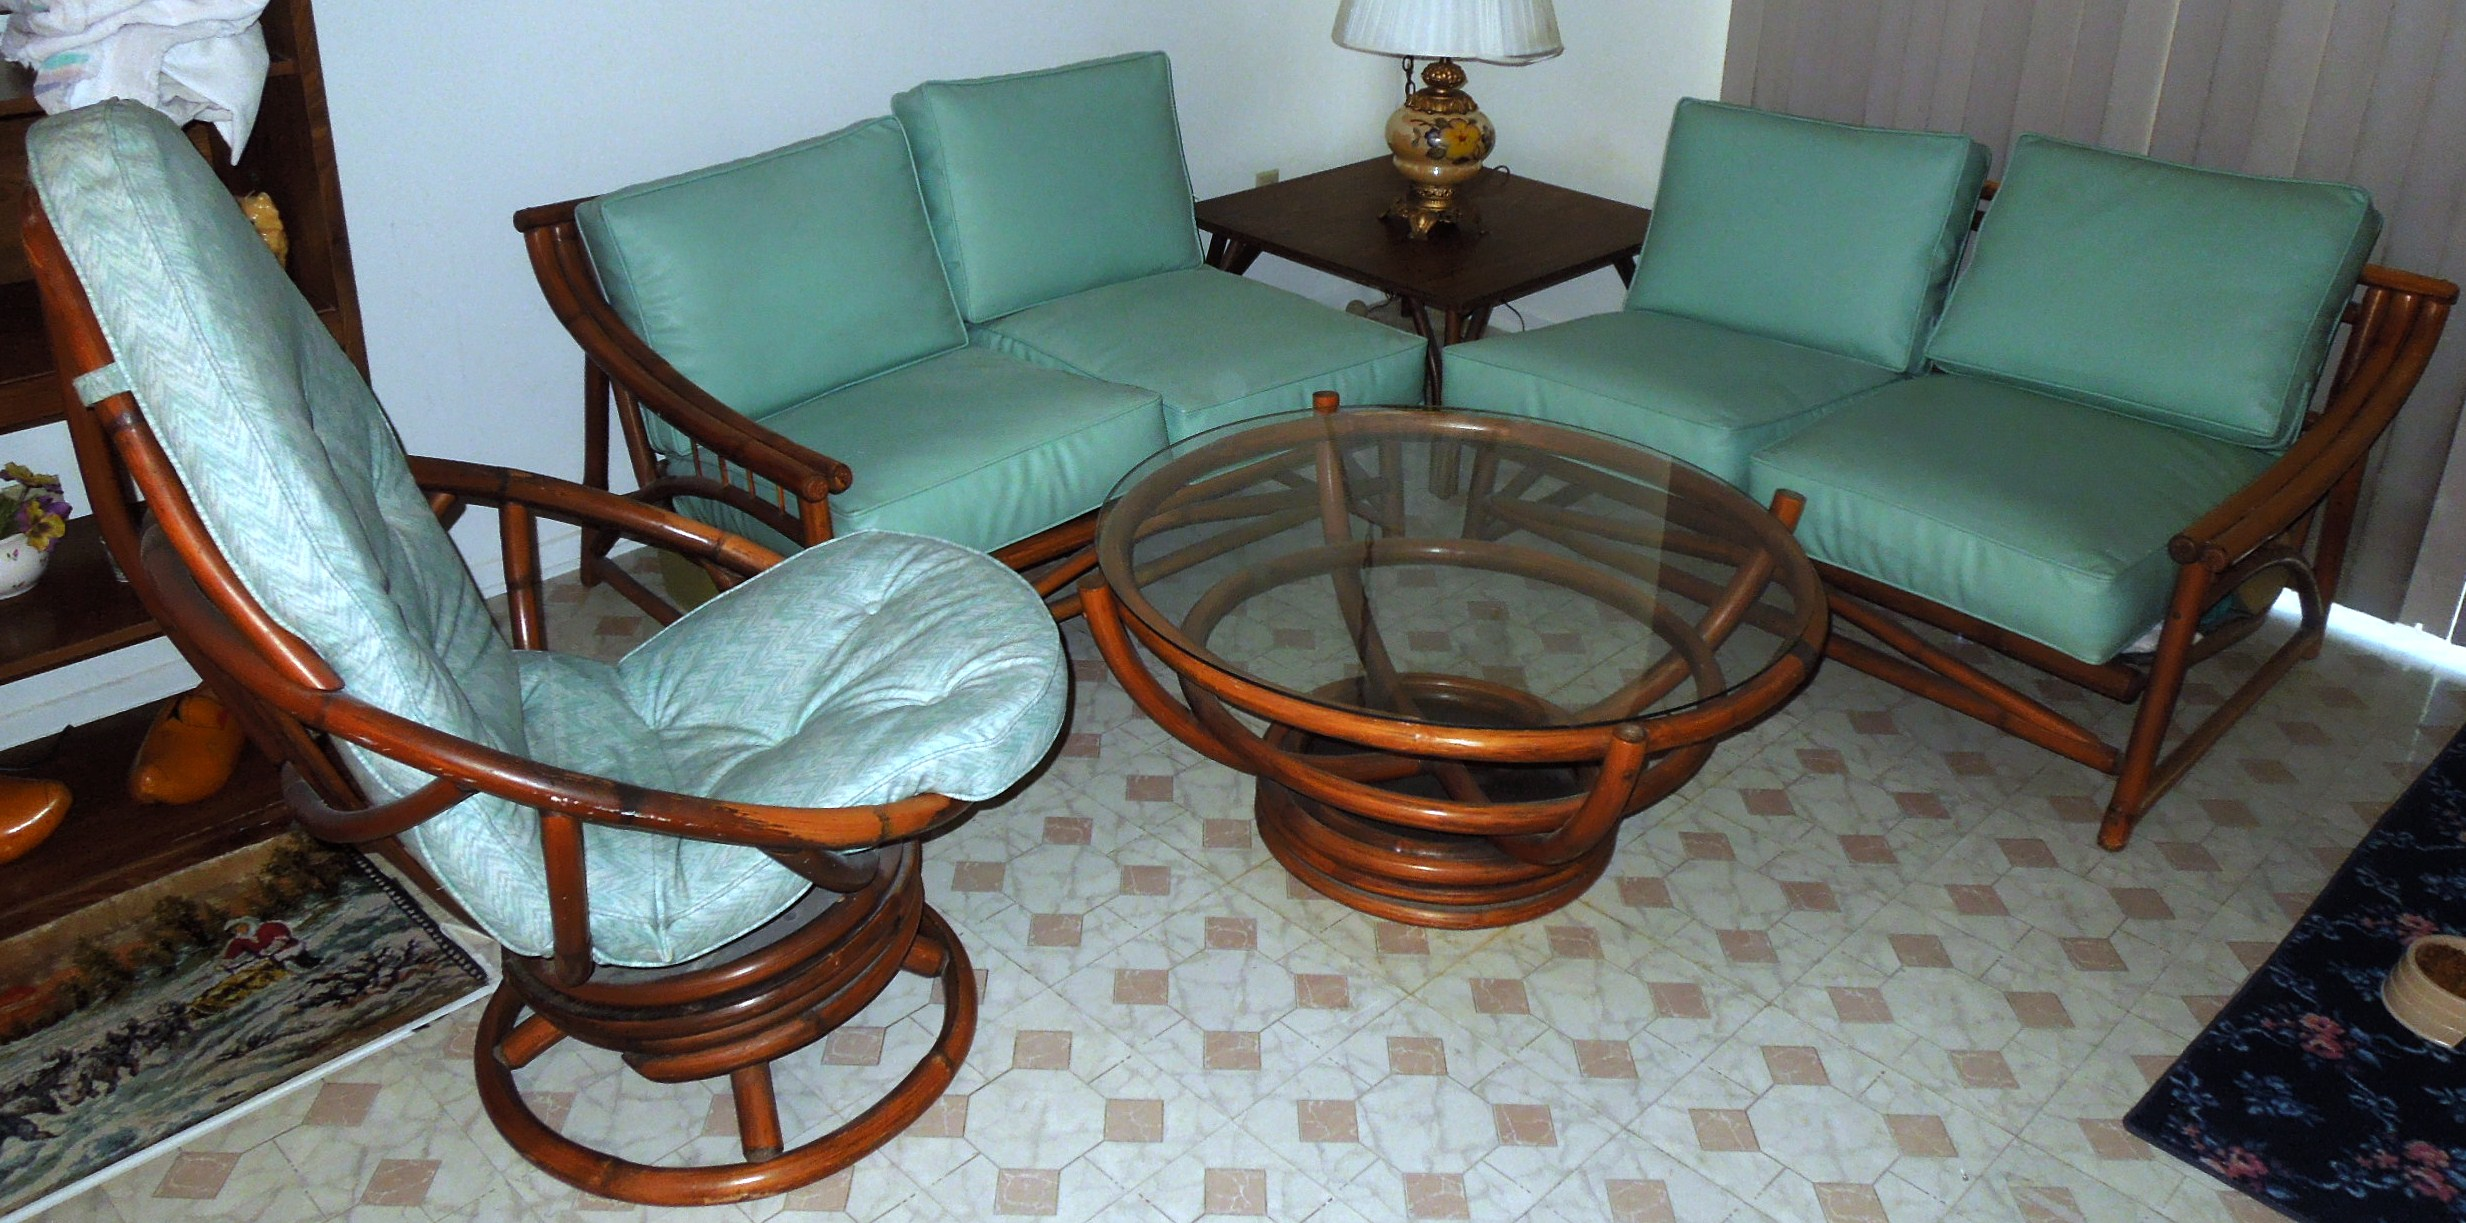 1960s Vintage BAMBOO U0026 Vinyl RETRO Living Room Furniture Set   For Sale Part 42